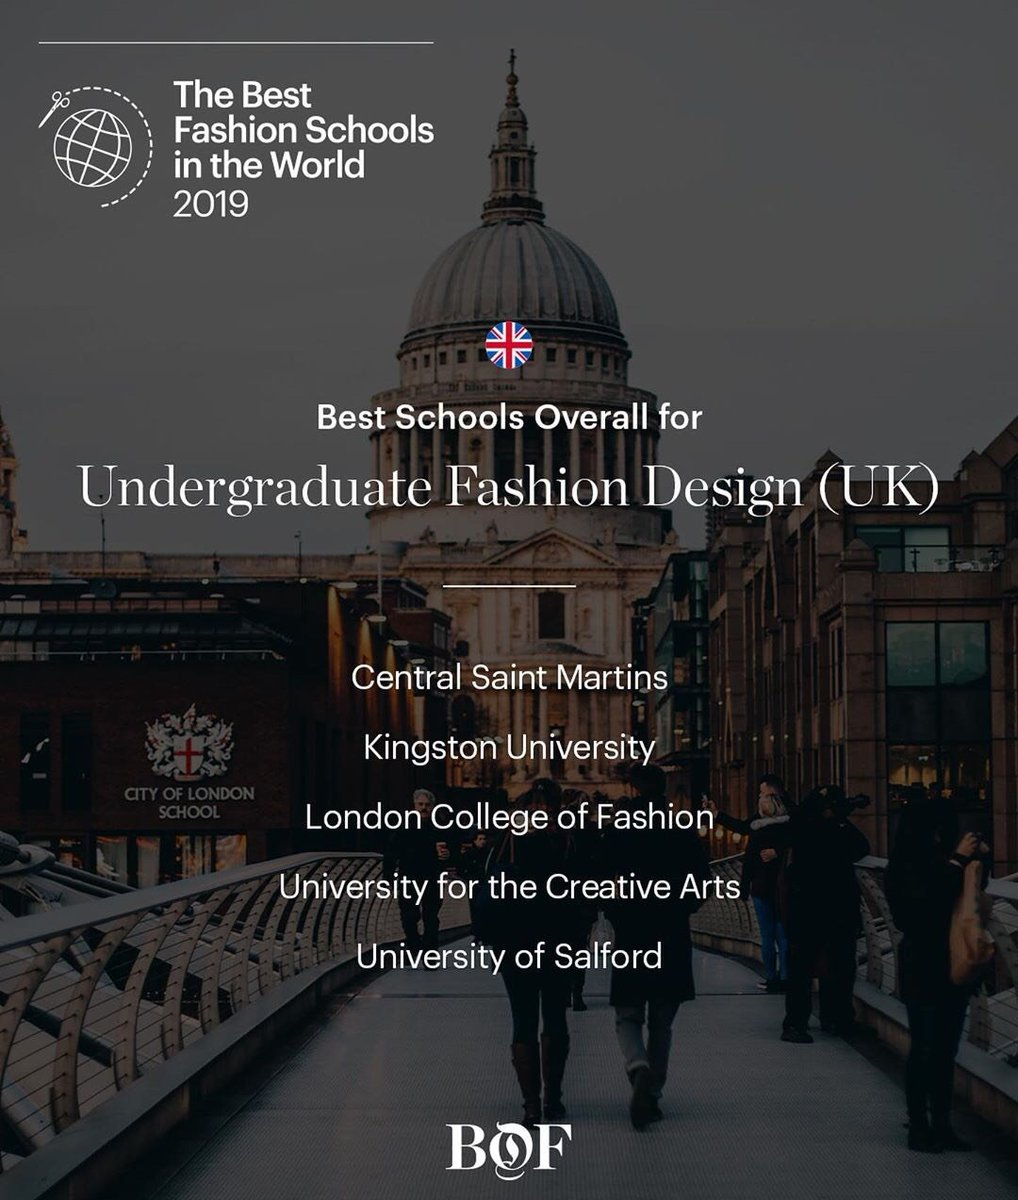 University Of Salford On Twitter Best In Learning Experience Best In Long Term Value Best Overall Bof Have Ranked Our Ba Hons Fashion Design Course As One In The Top Five Best